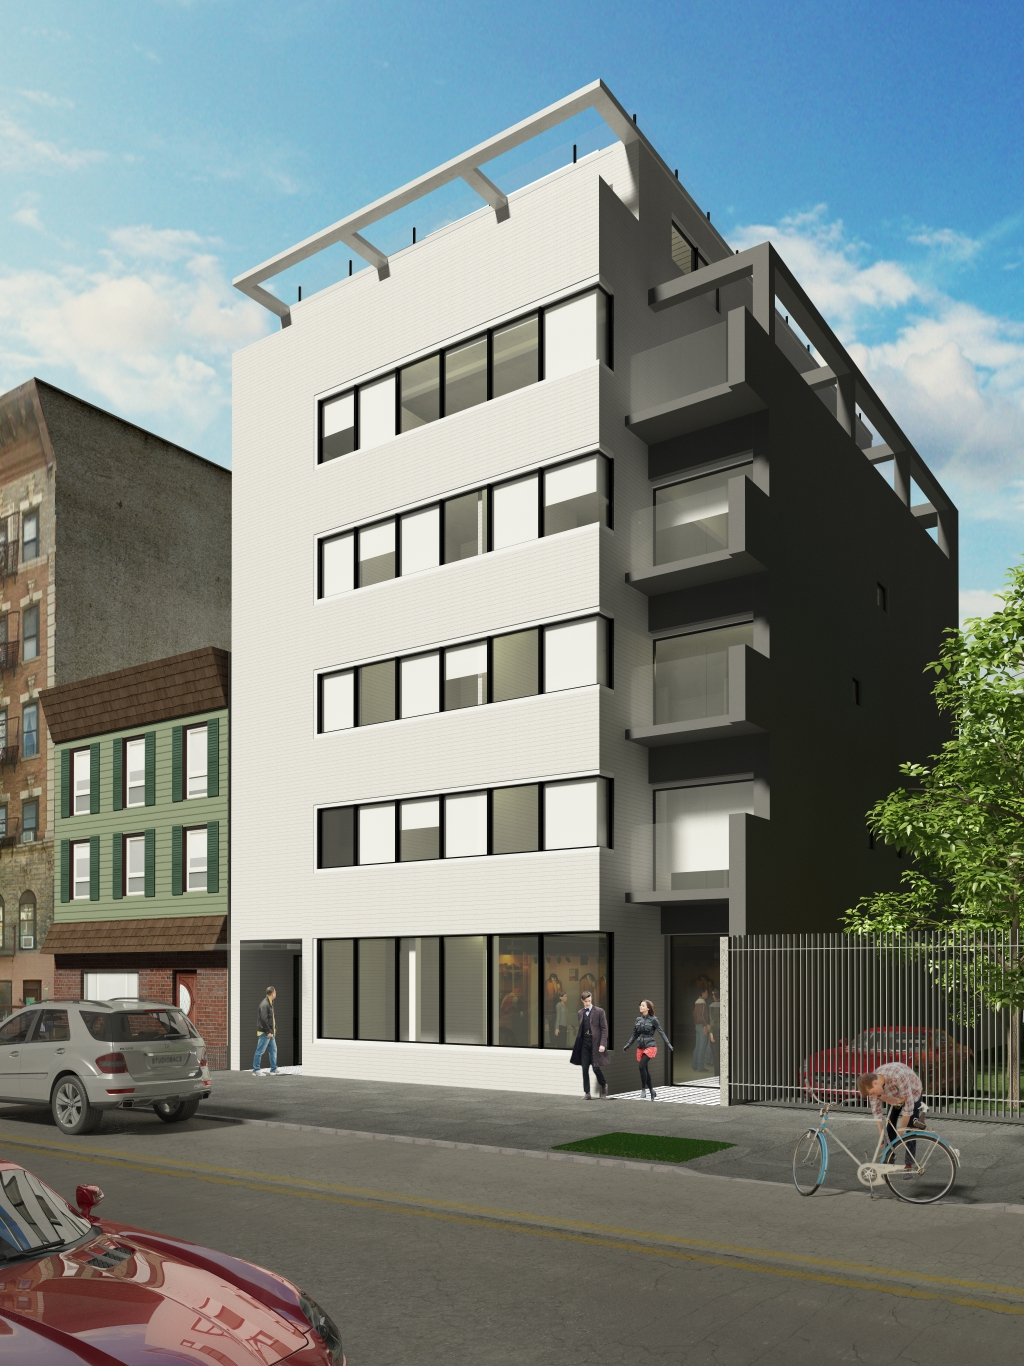 650 Metropolitan Avenue, rendering by Domo Architecture